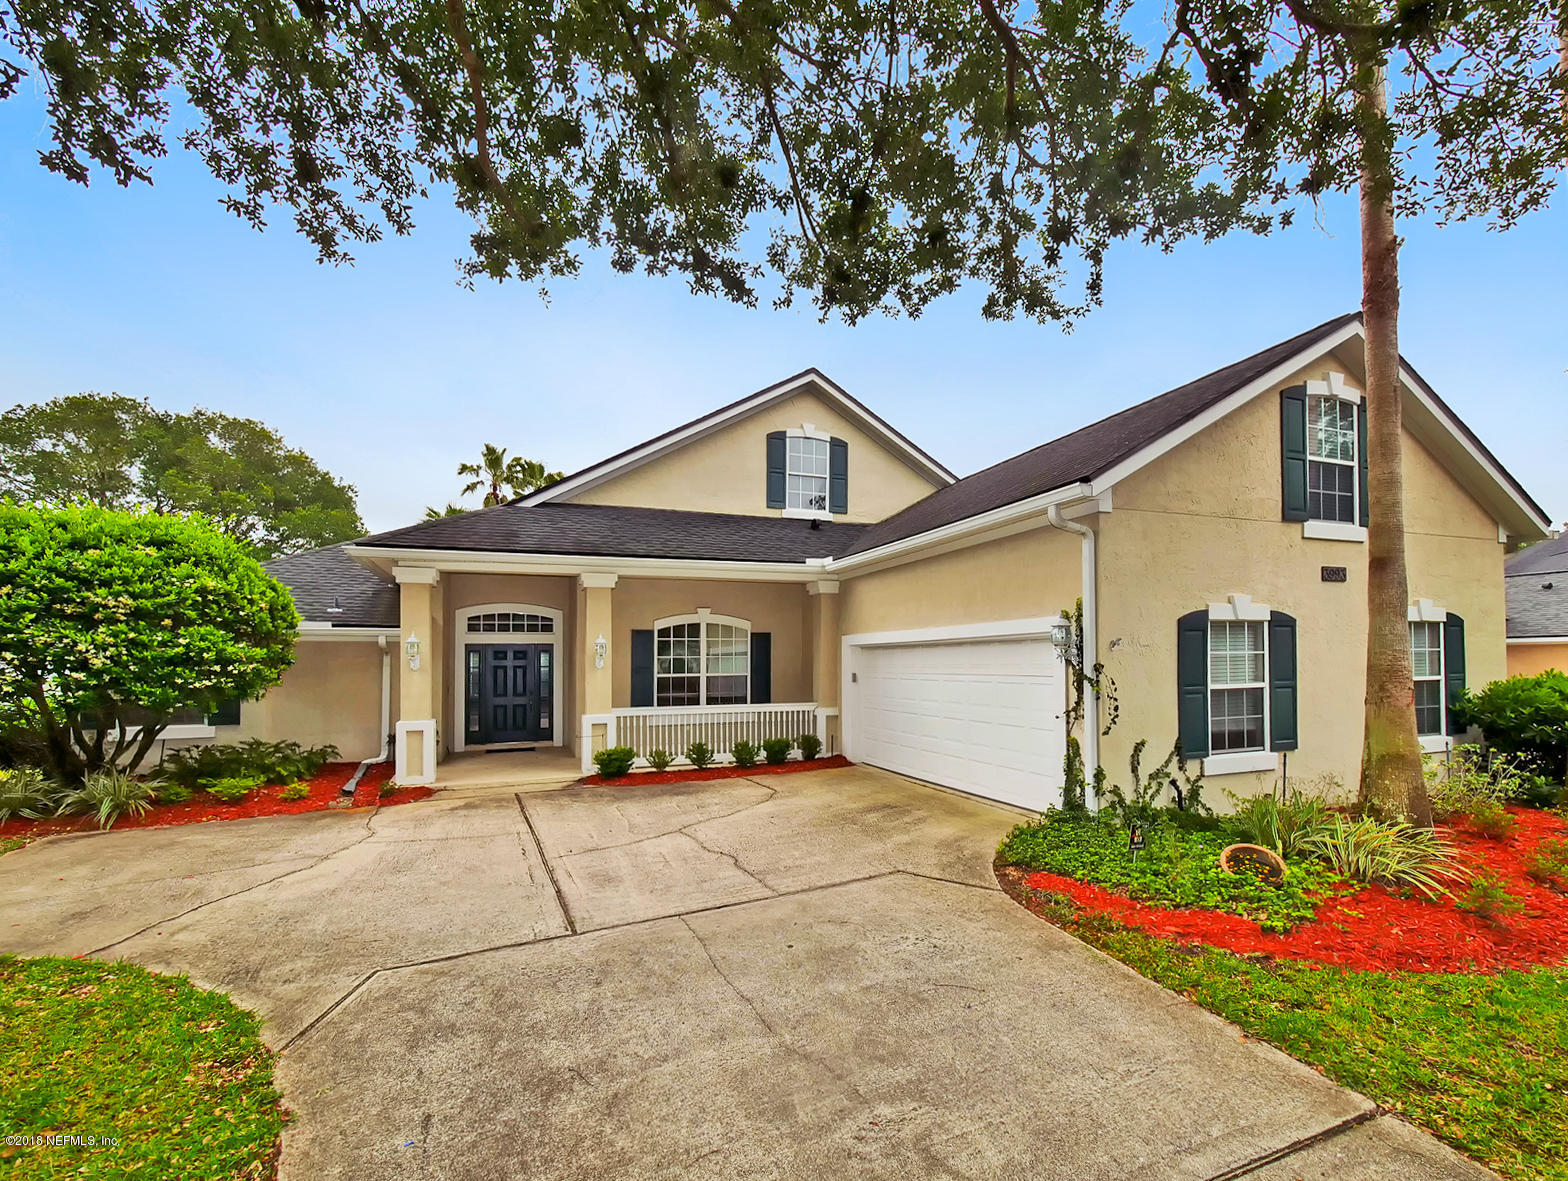 3993 CATTAIL POND, JACKSONVILLE, FLORIDA 32224, 4 Bedrooms Bedrooms, ,3 BathroomsBathrooms,Residential - single family,For sale,CATTAIL POND,933099